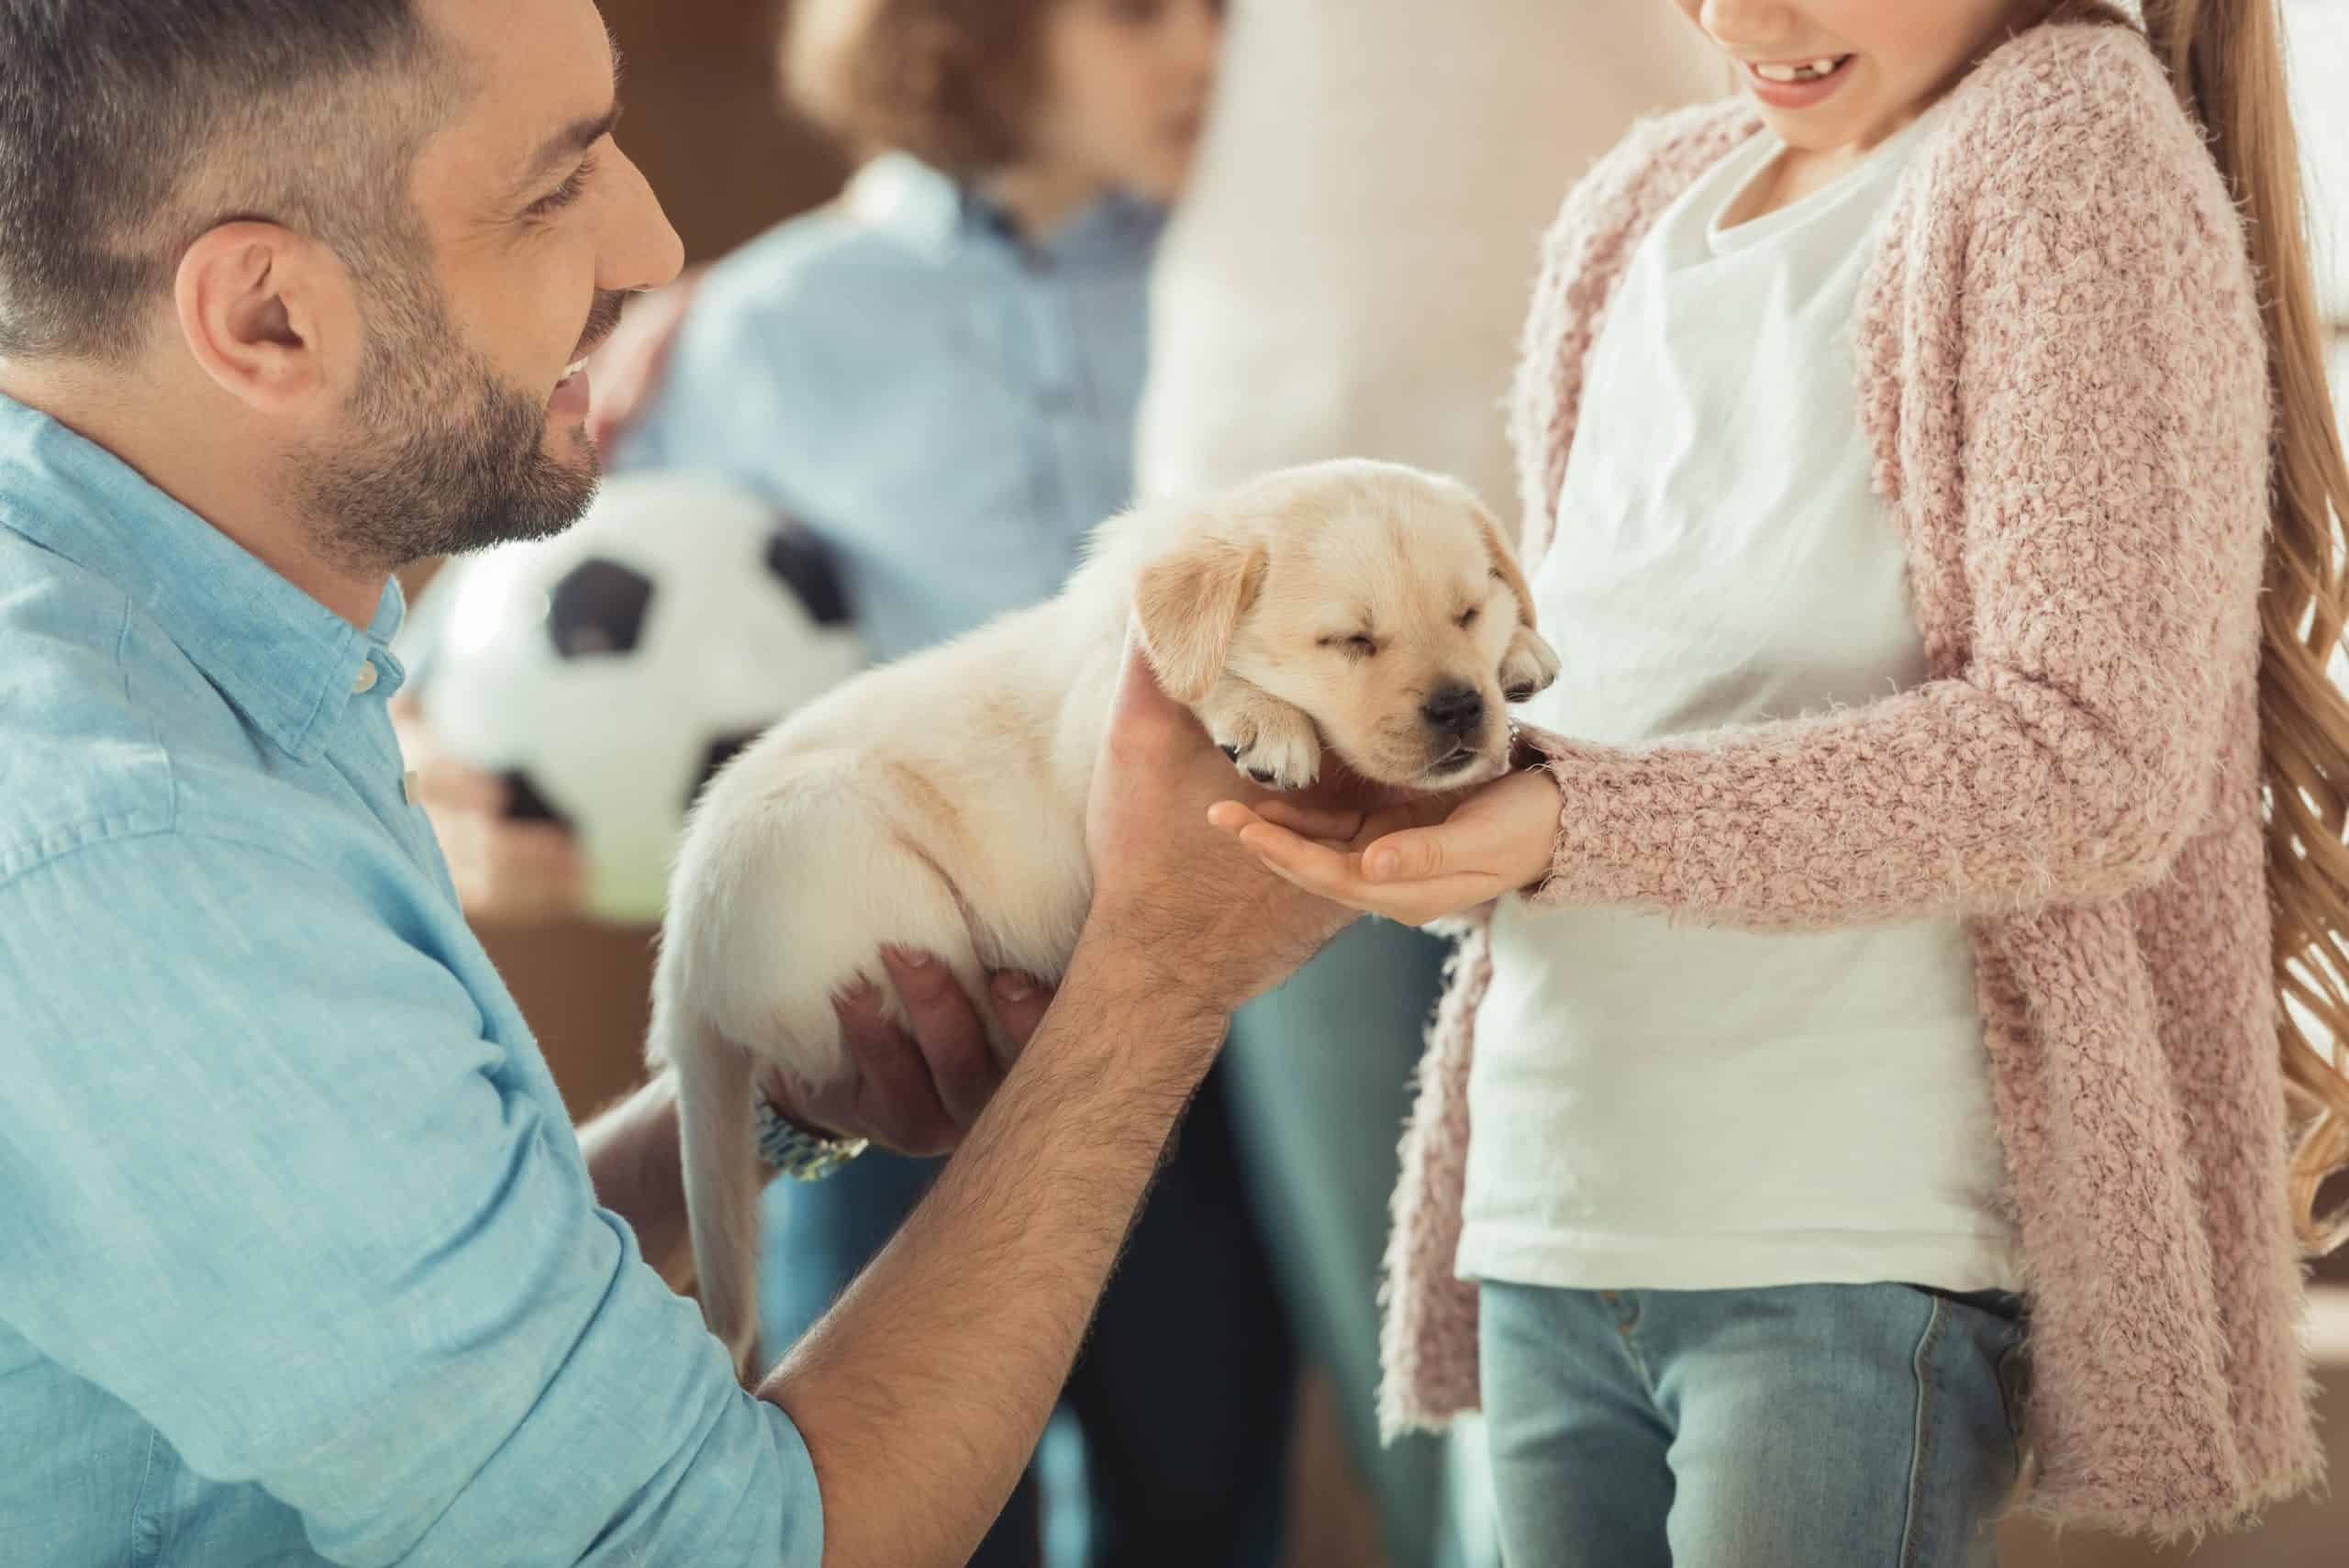 Man hands Golden Retriever puppy to girl. Before you get a child a dog, make sure you have the time, energy, and financial resources to care for a new family member.